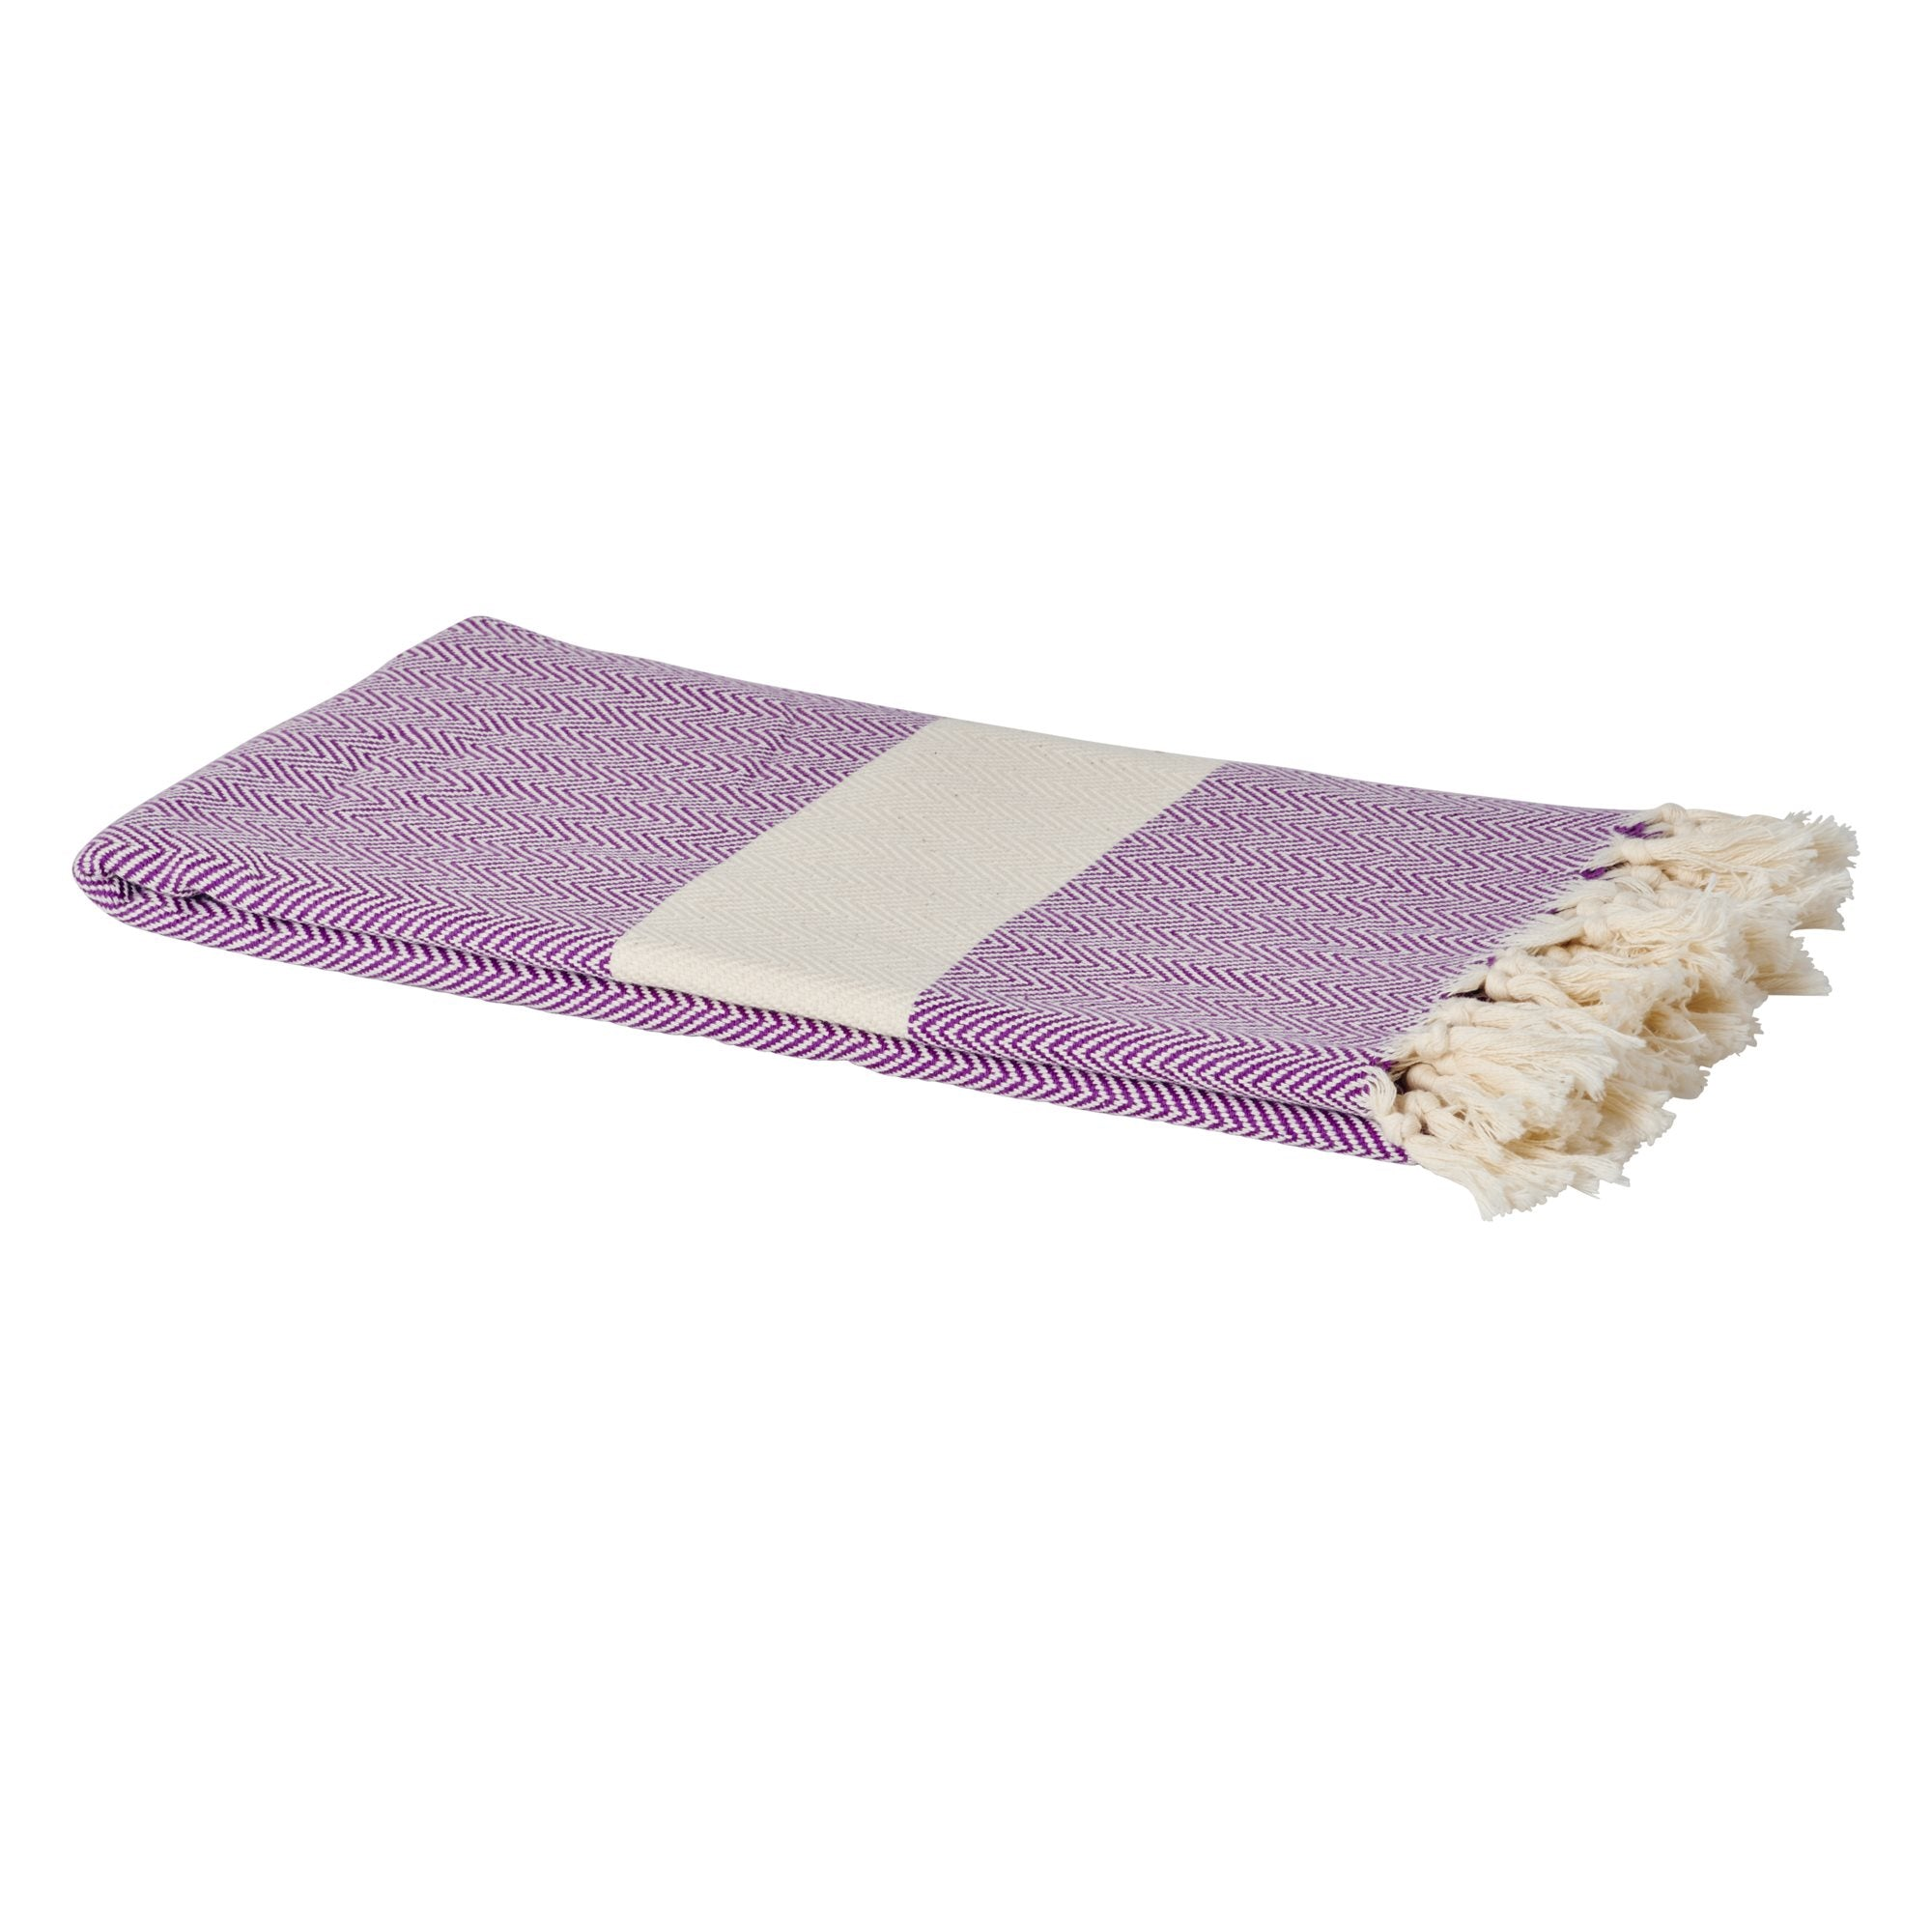 Soft Hamam Turkish Towel/Blanket - Purple